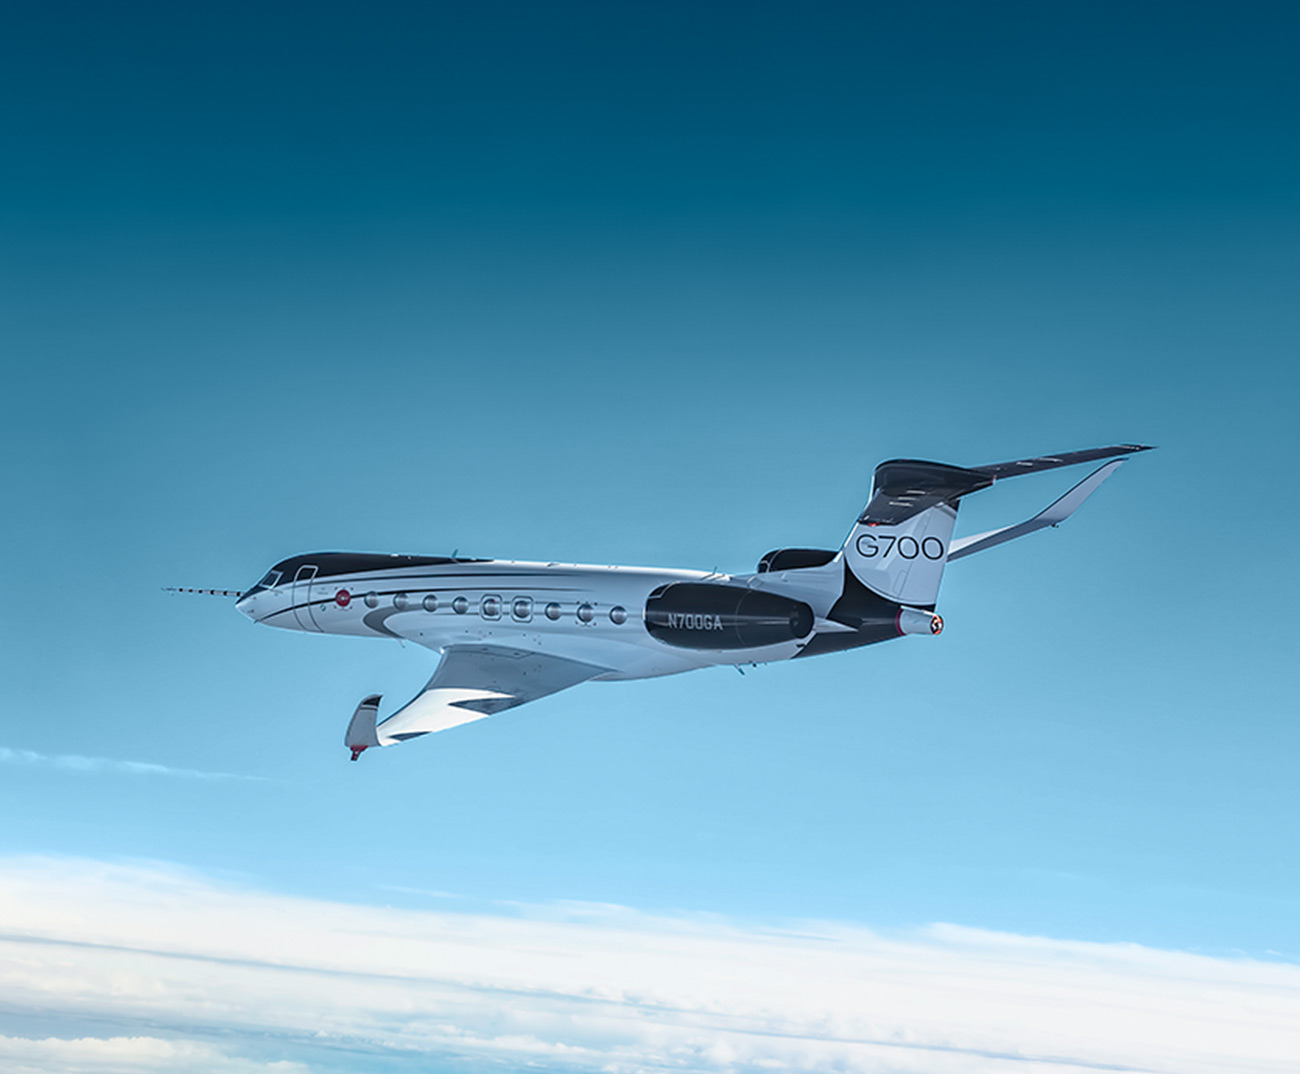 G700 in flight